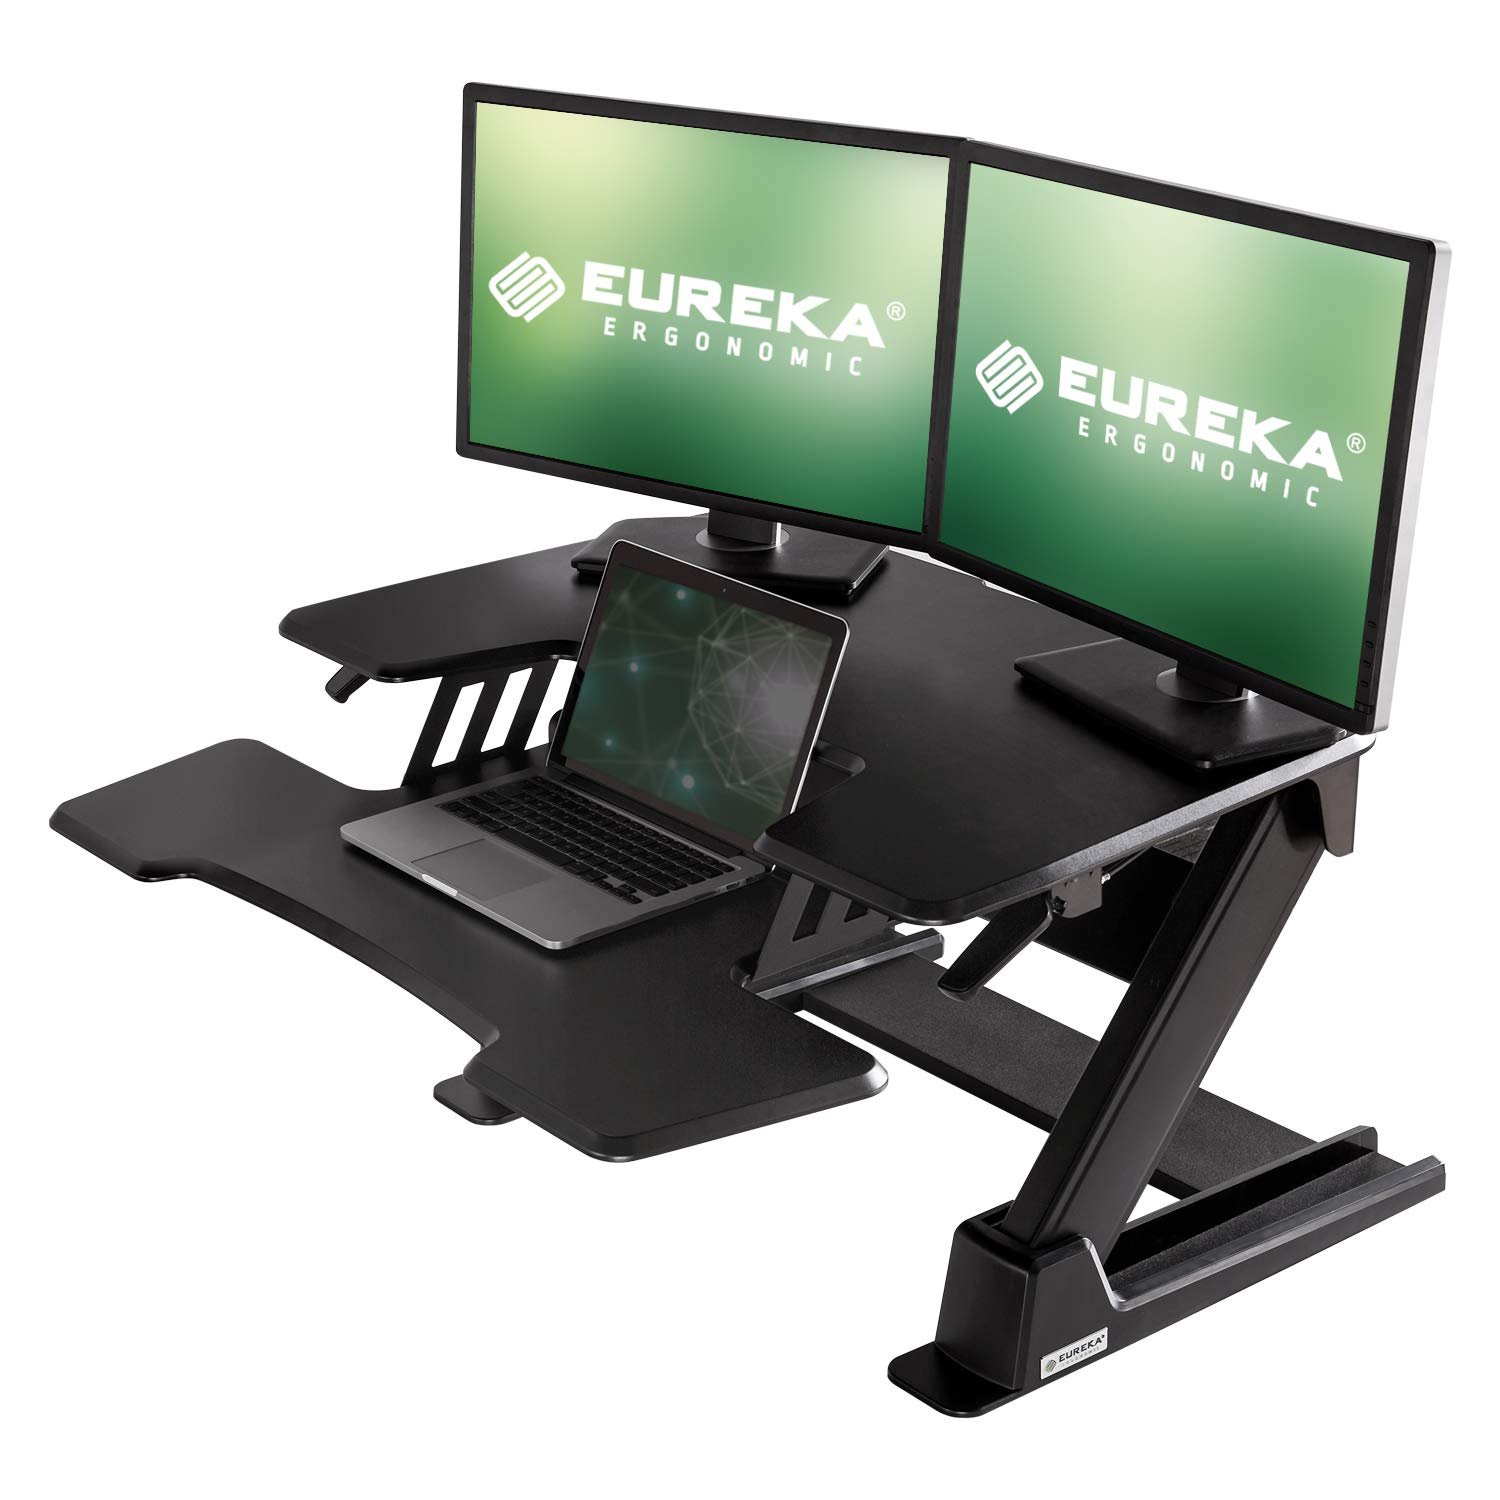 [Upgrade]Eureka Ergonomic V2 Sit To Stand Desk Converter, 36'' Height Adjustable Standing Desk Risers Converters Desktop Stand Computer Workstation Home Office Computer Desk with Keyboard Tray - Black